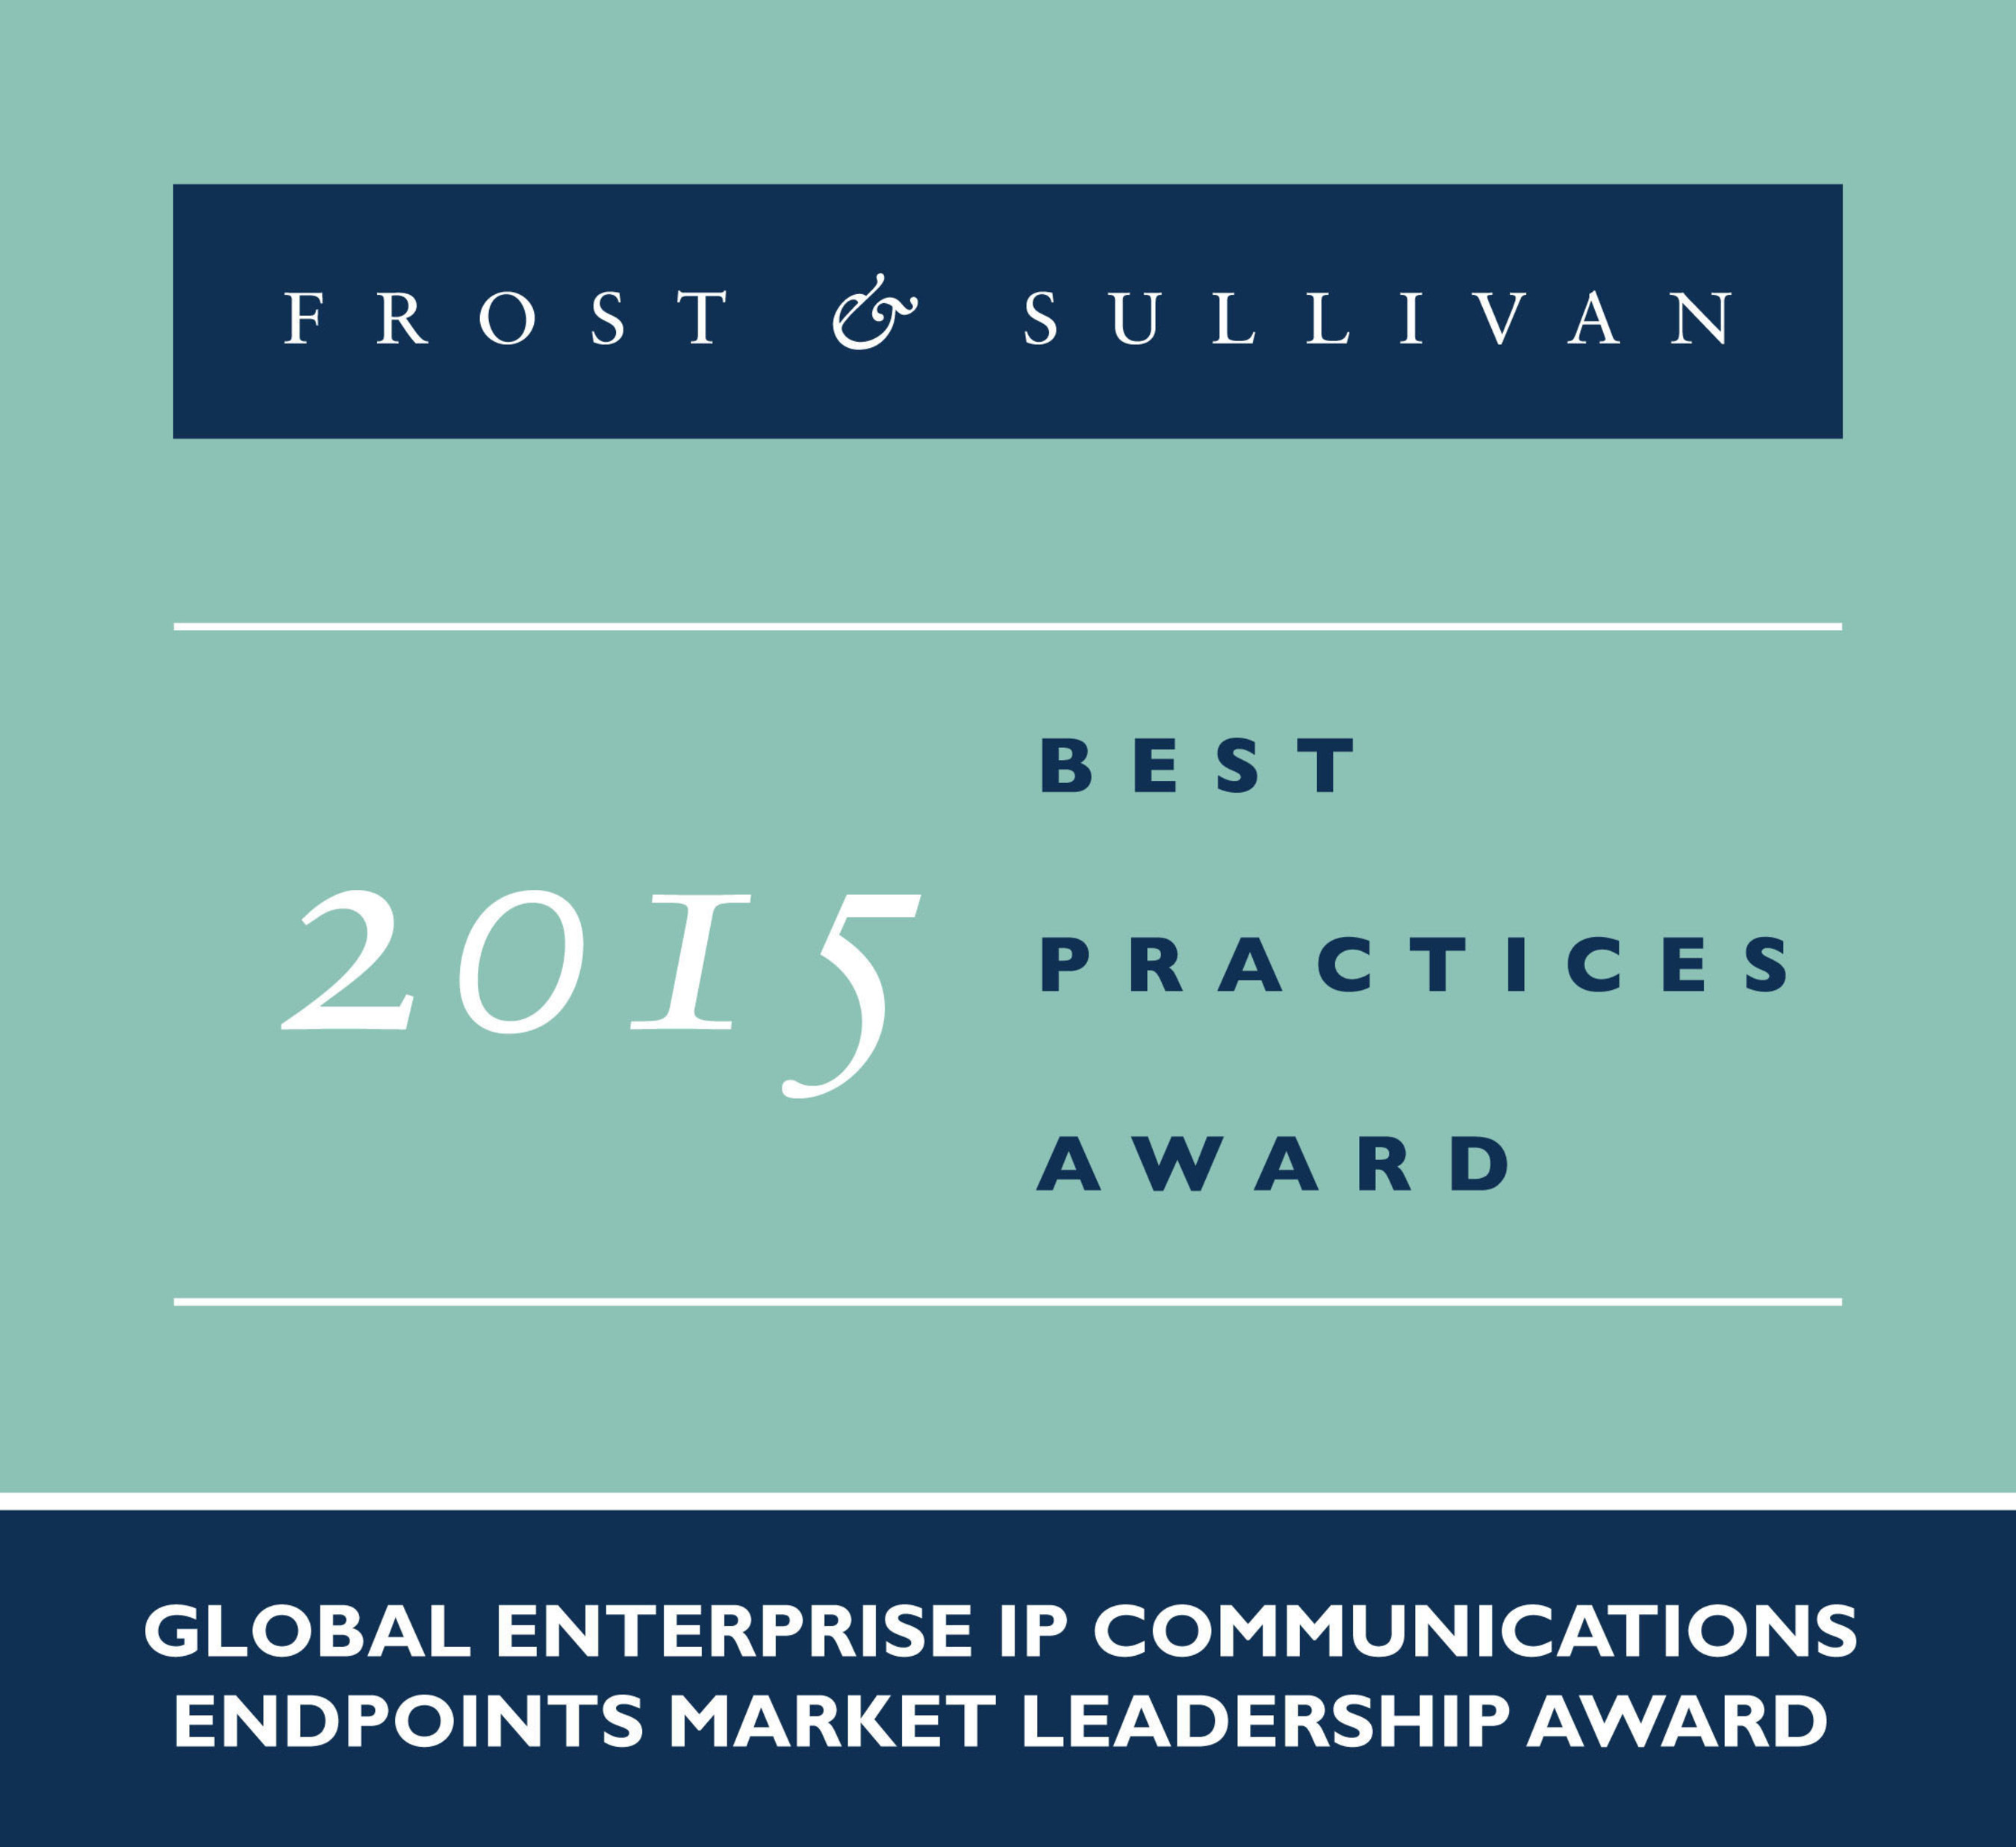 Frost & Sullivan Acclaims Cisco's Rise to the Top through its Relentless Pursuit of Technology Excellence